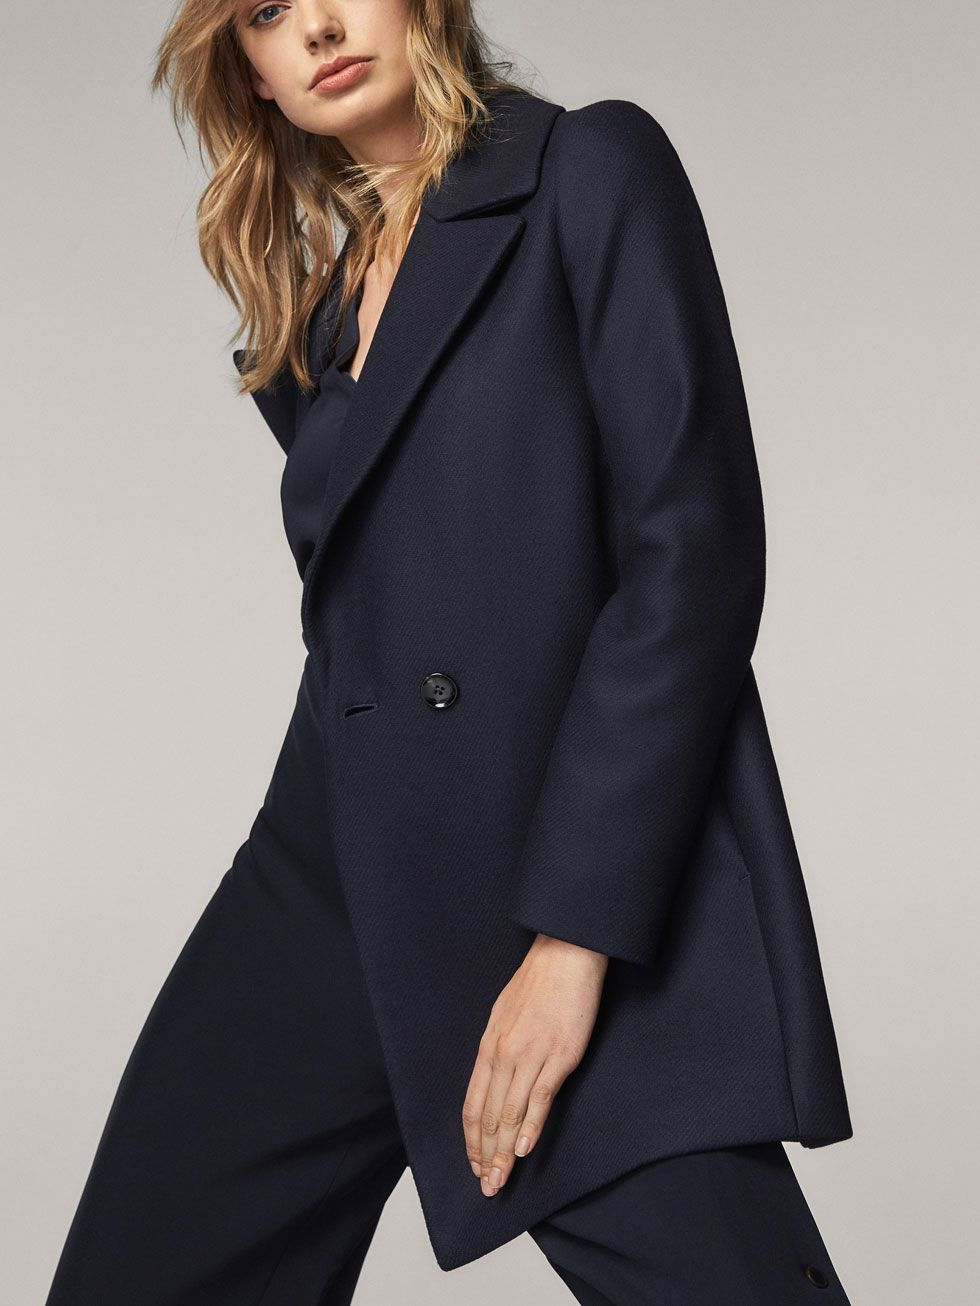 4b53e87a225 Spring Summer 2017 Women´s NAVY BLUE WOOL COAT at Massimo Dutti for 2590.  Effortless elegance!